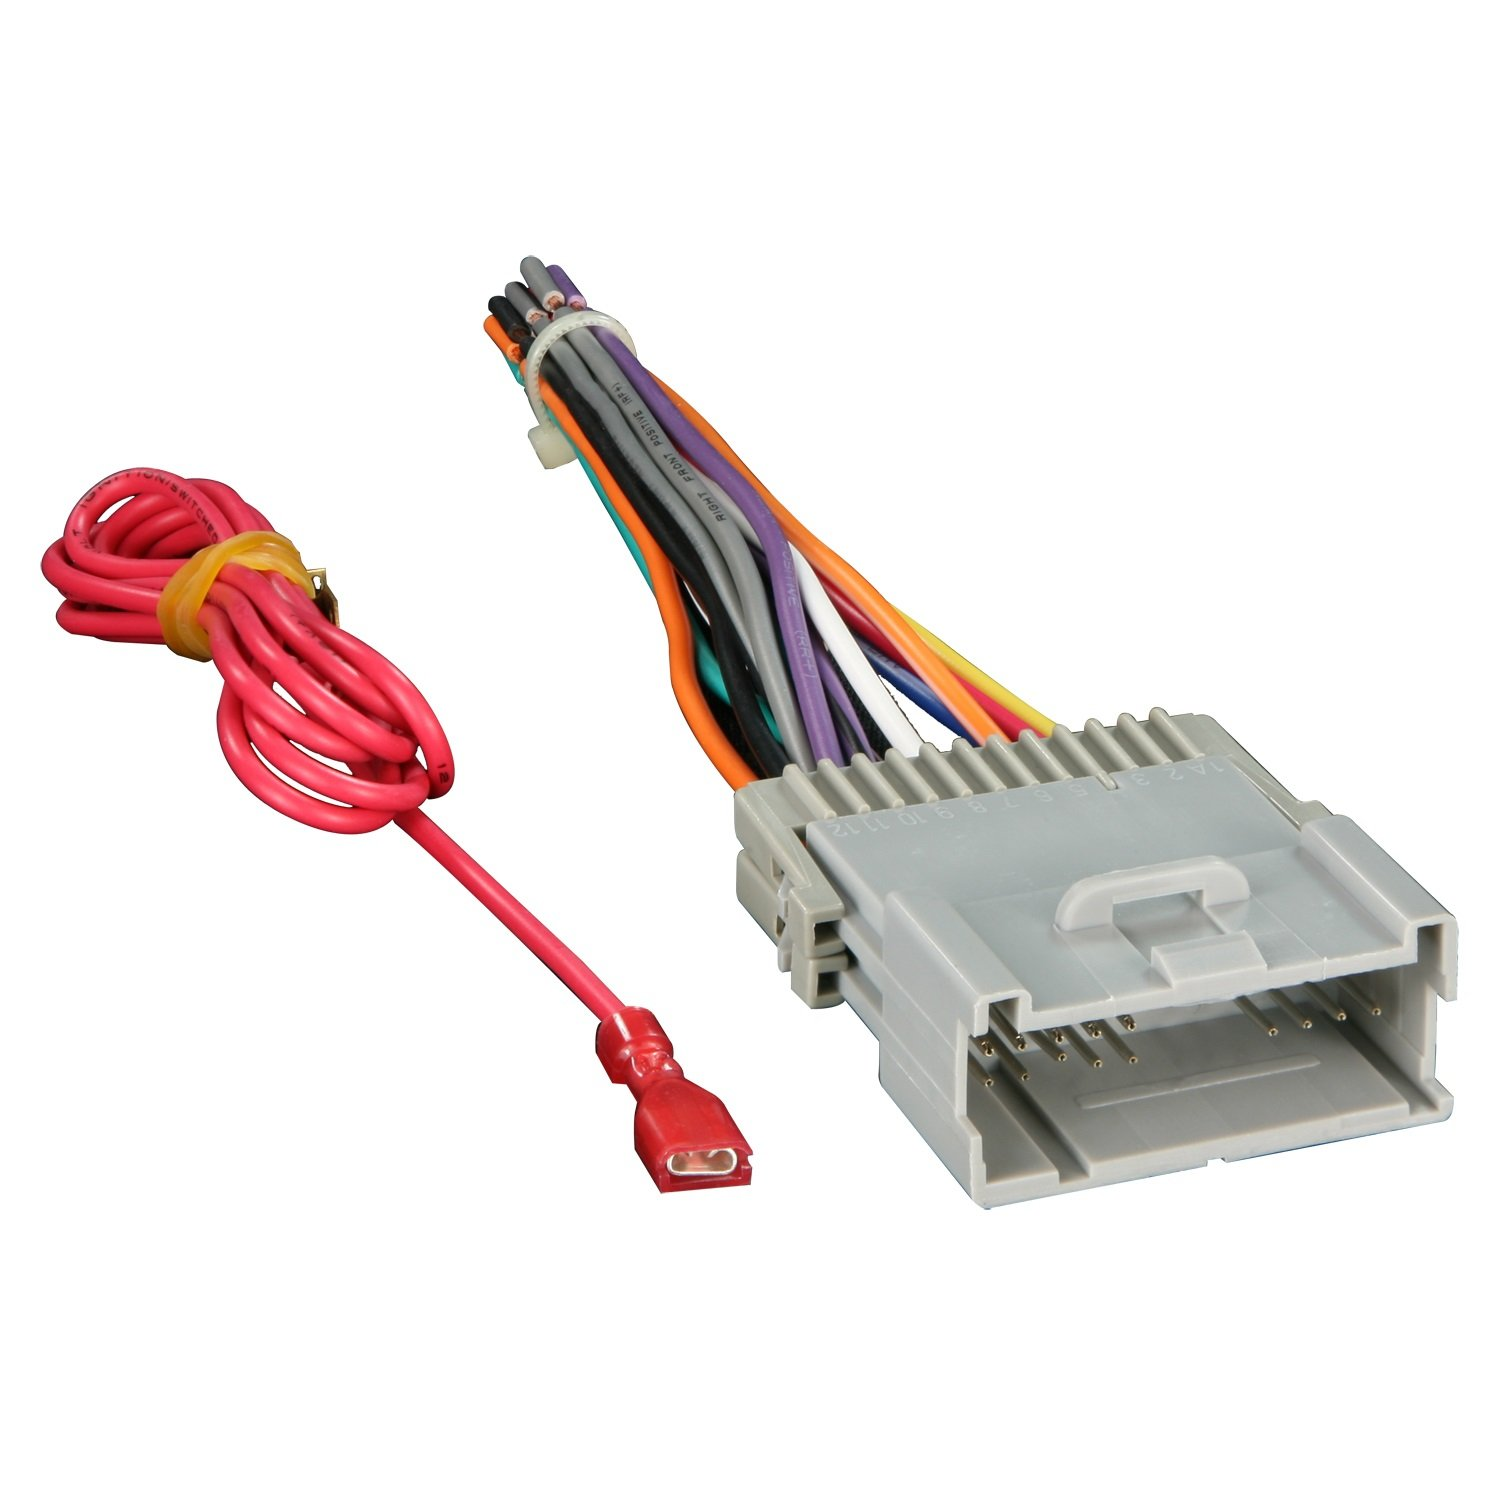 61eewxp9orL._SL1500_ amazon com metra 70 2003 radio wiring harness for gm 98 08  at gsmx.co